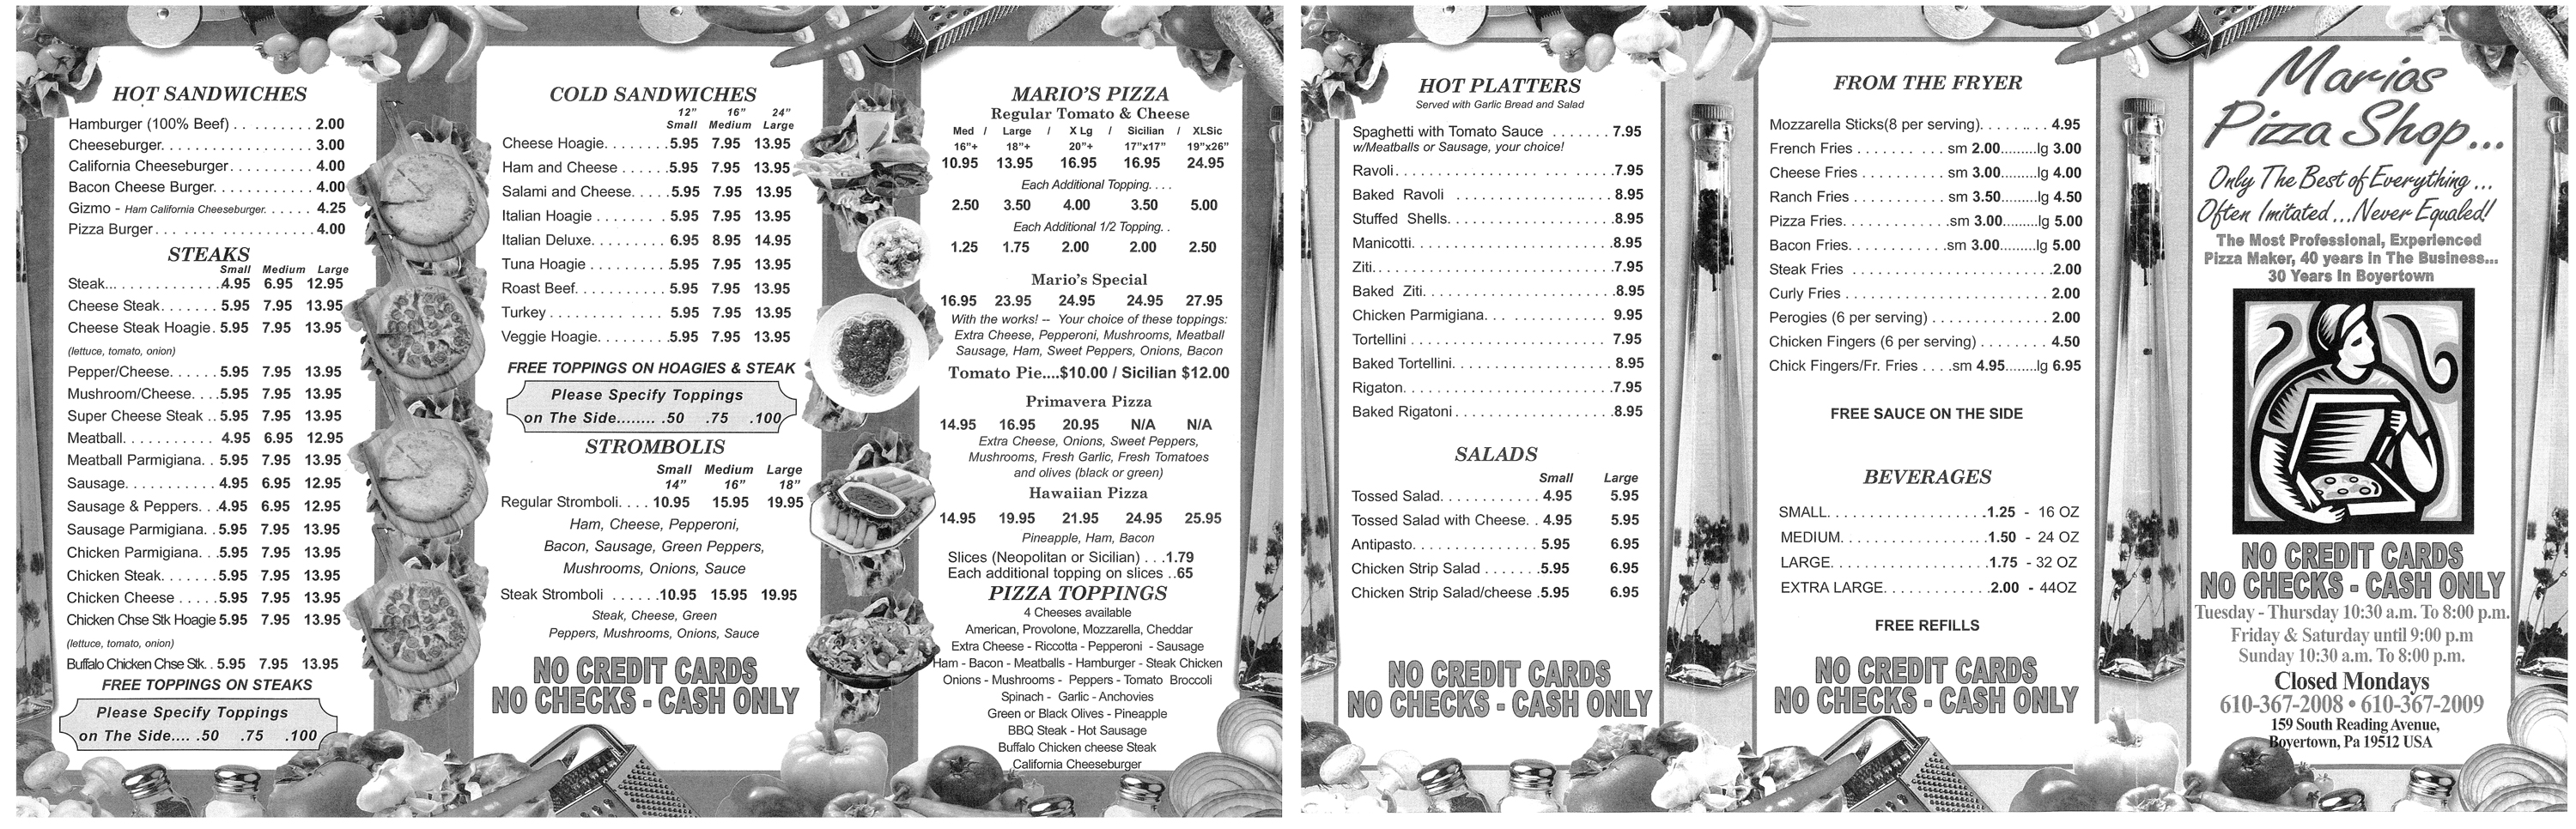 Marios Pizza Menu